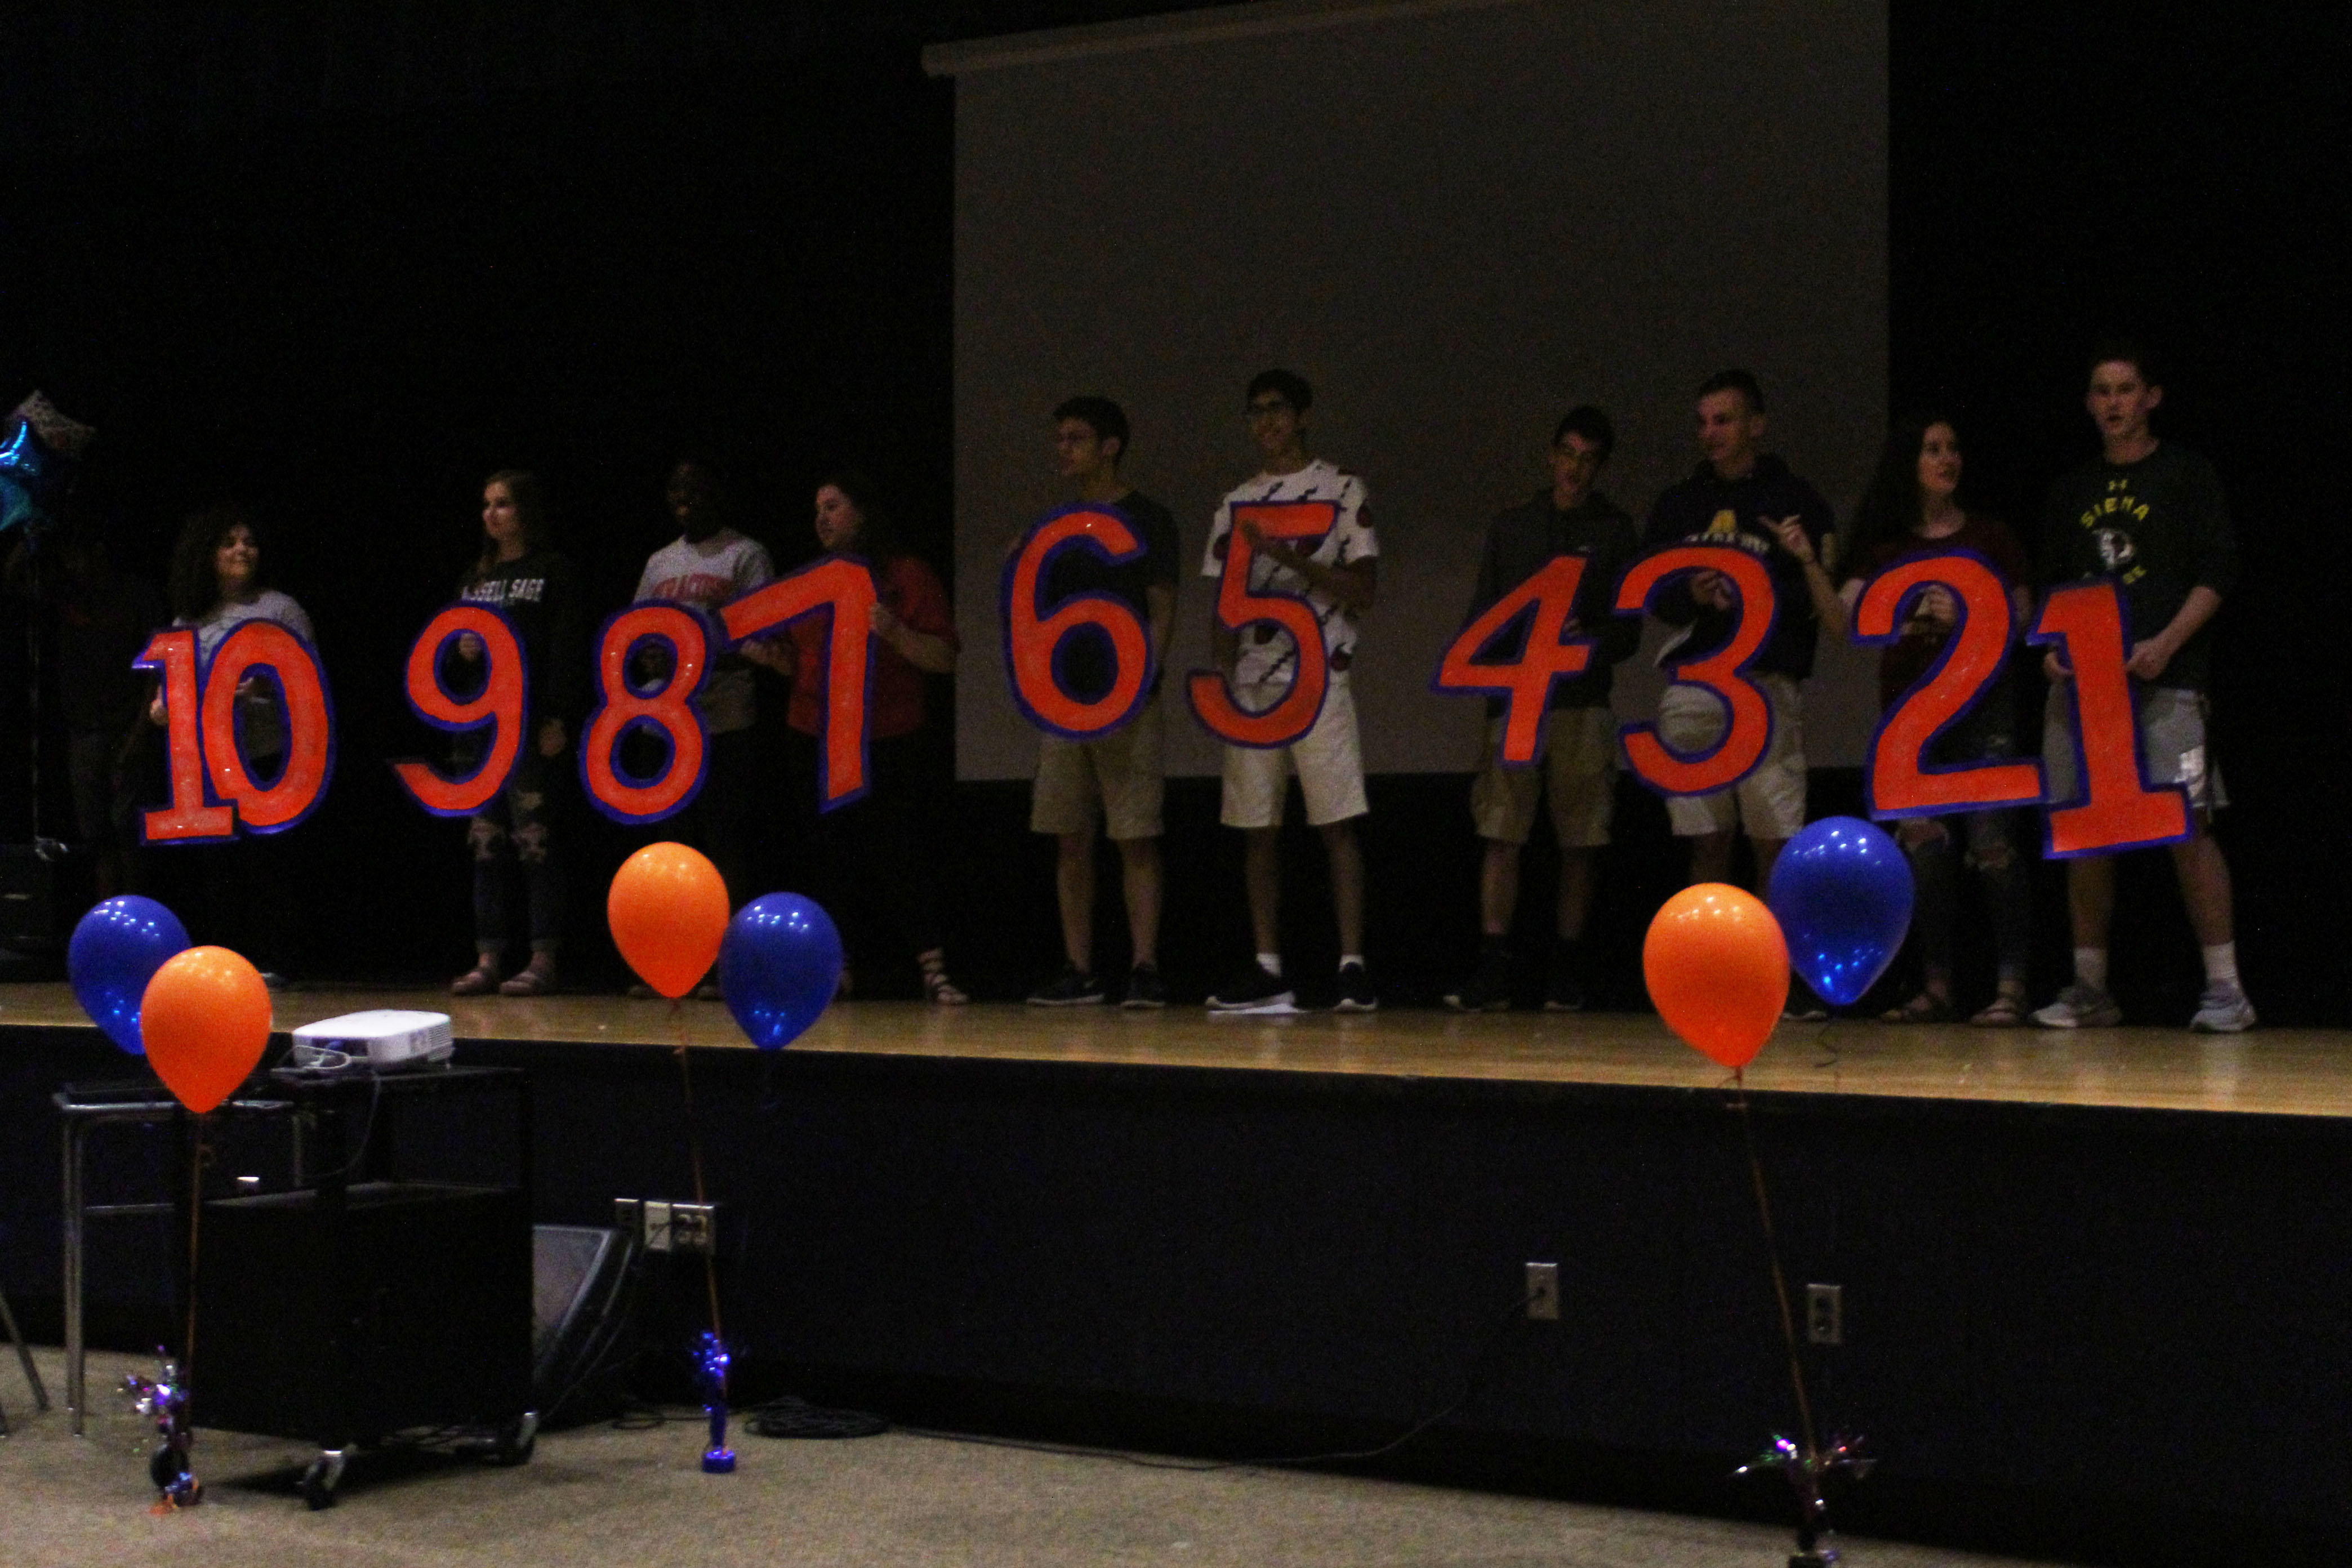 ents holding number representing their class ranking